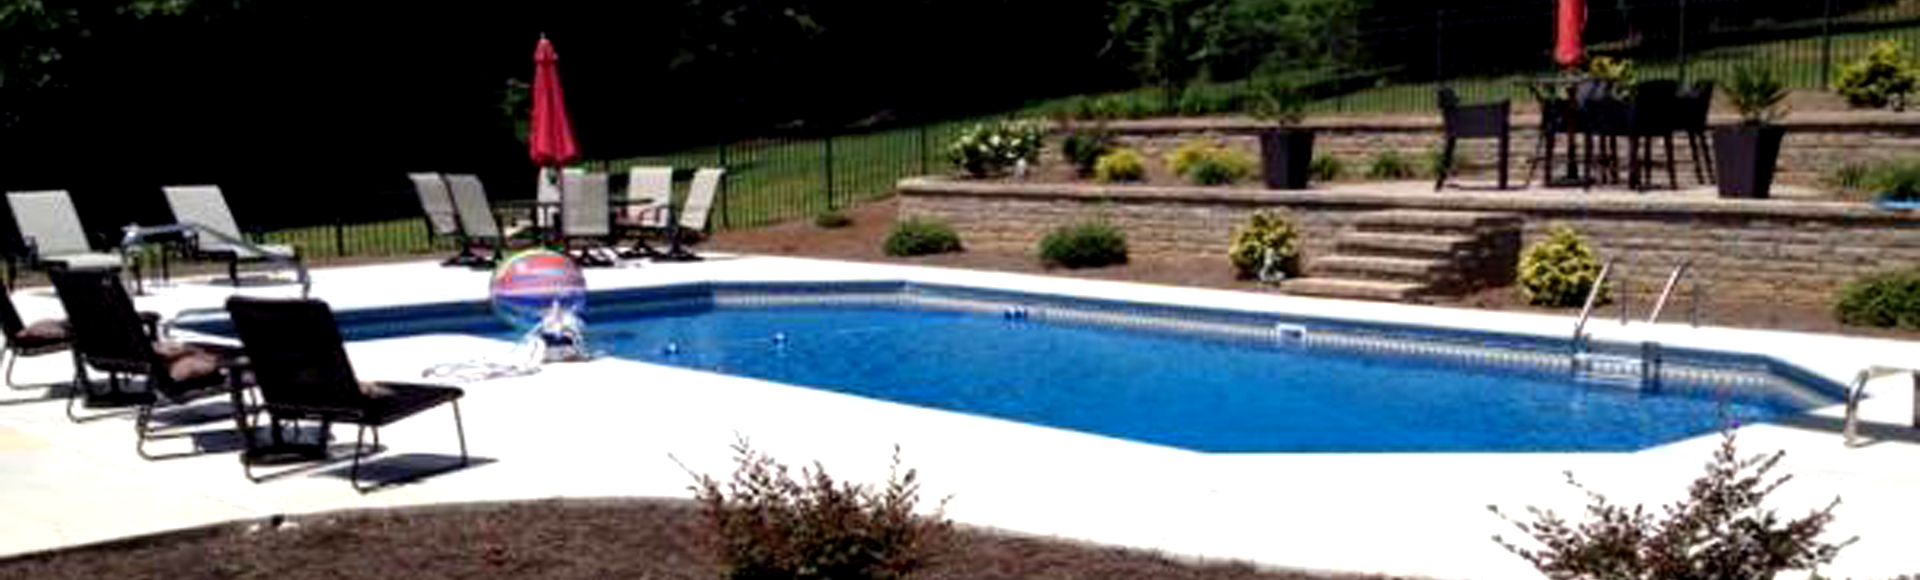 Guilford pools guilford pools for Pool design basics